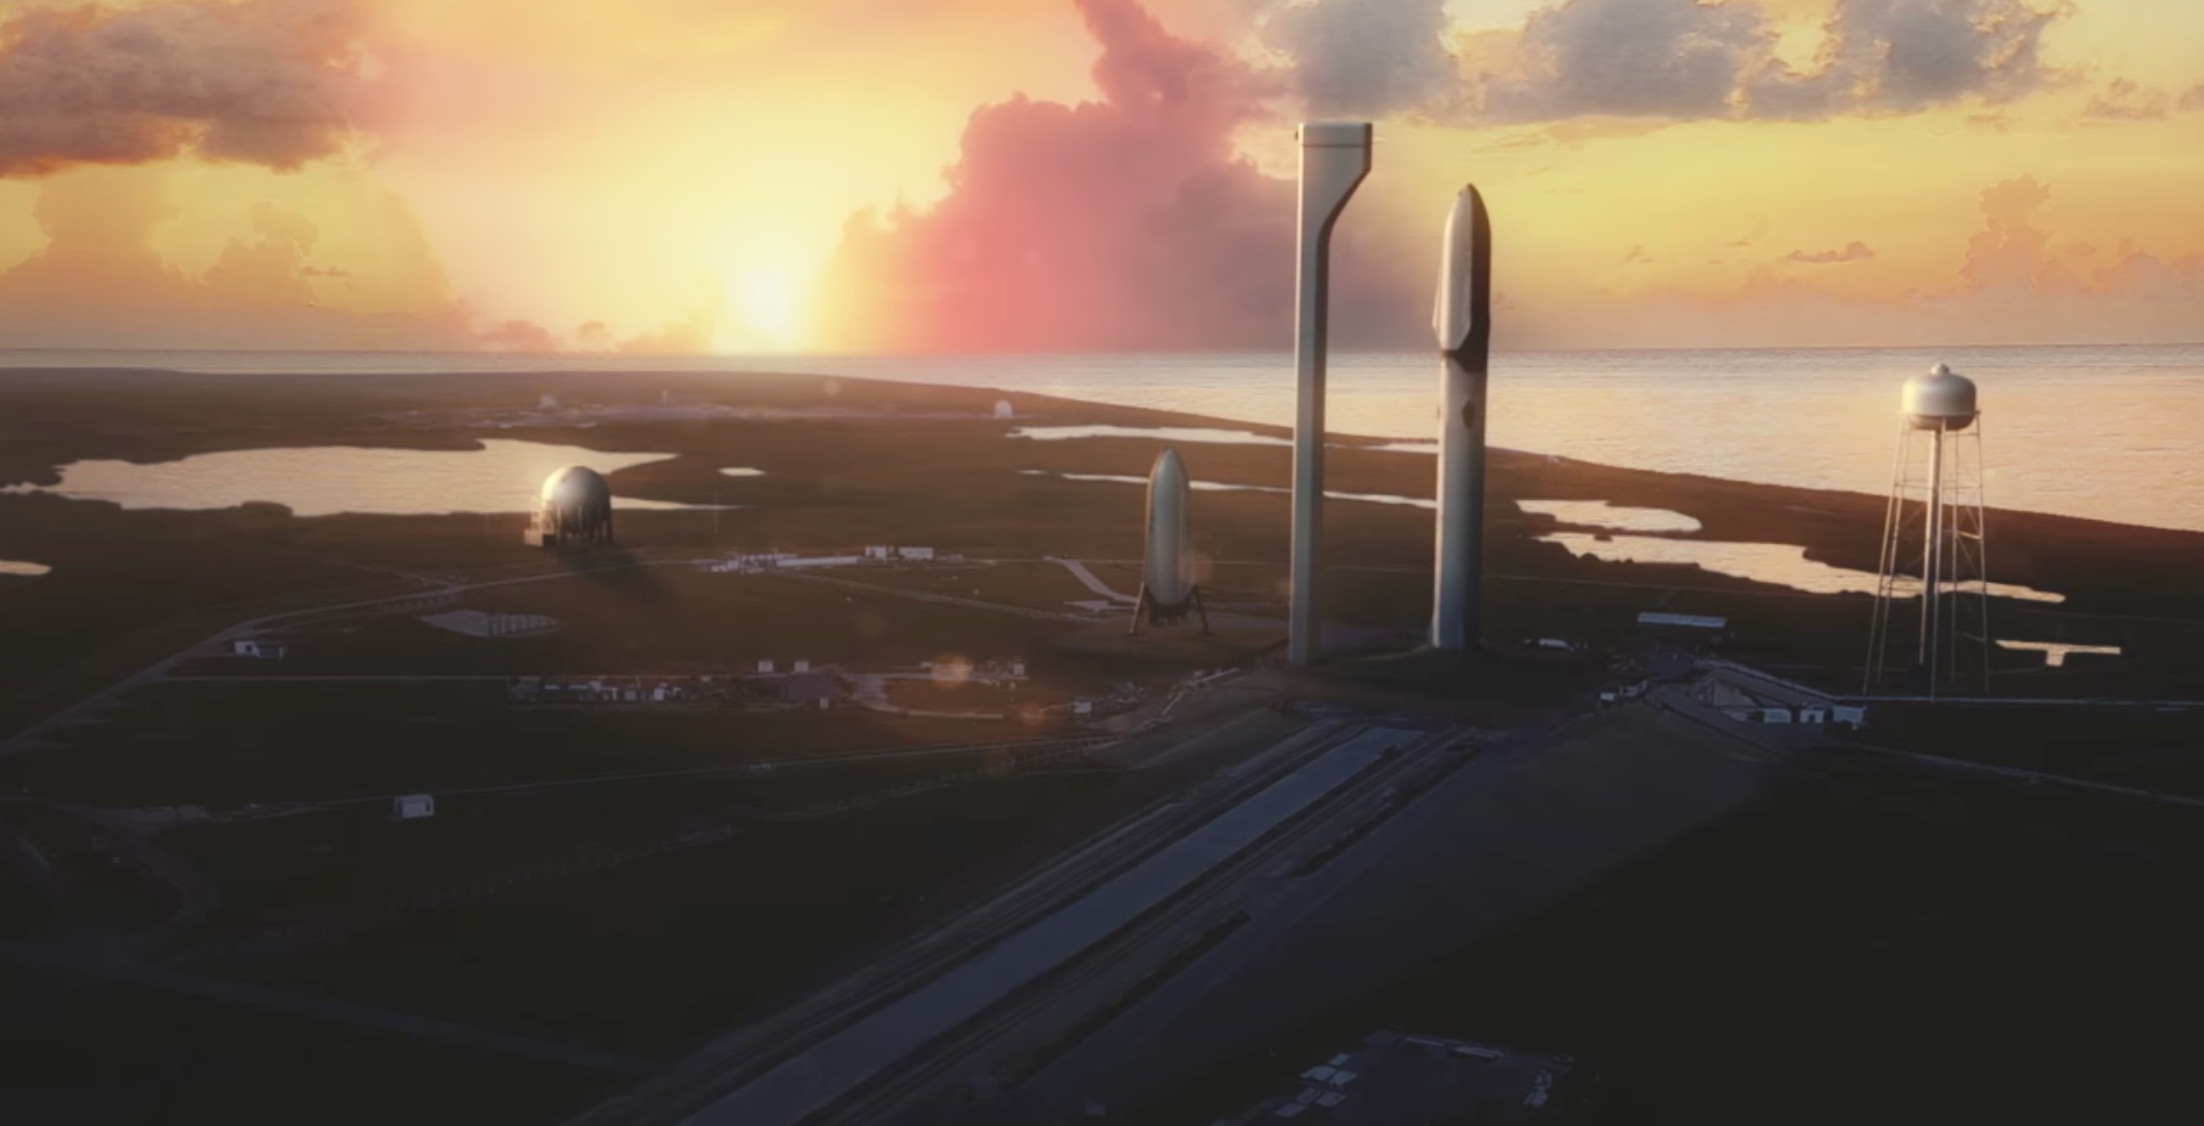 spacex-interplanetary-transport-system-concept